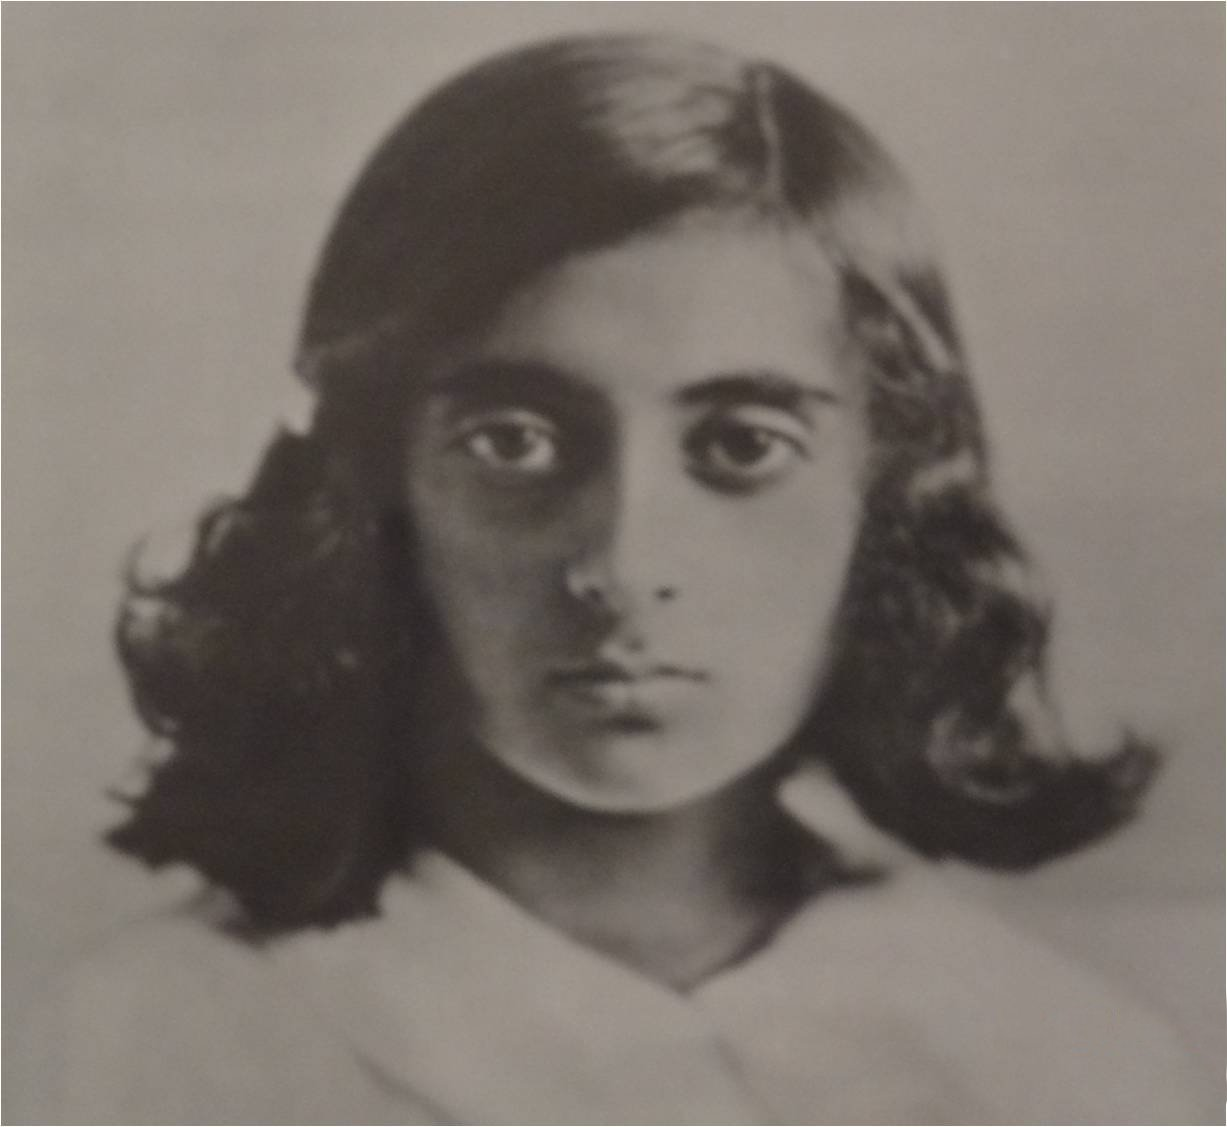 http://upload.wikimedia.org/wikipedia/commons/4/4e/IndiraGandhi-Young.jpg